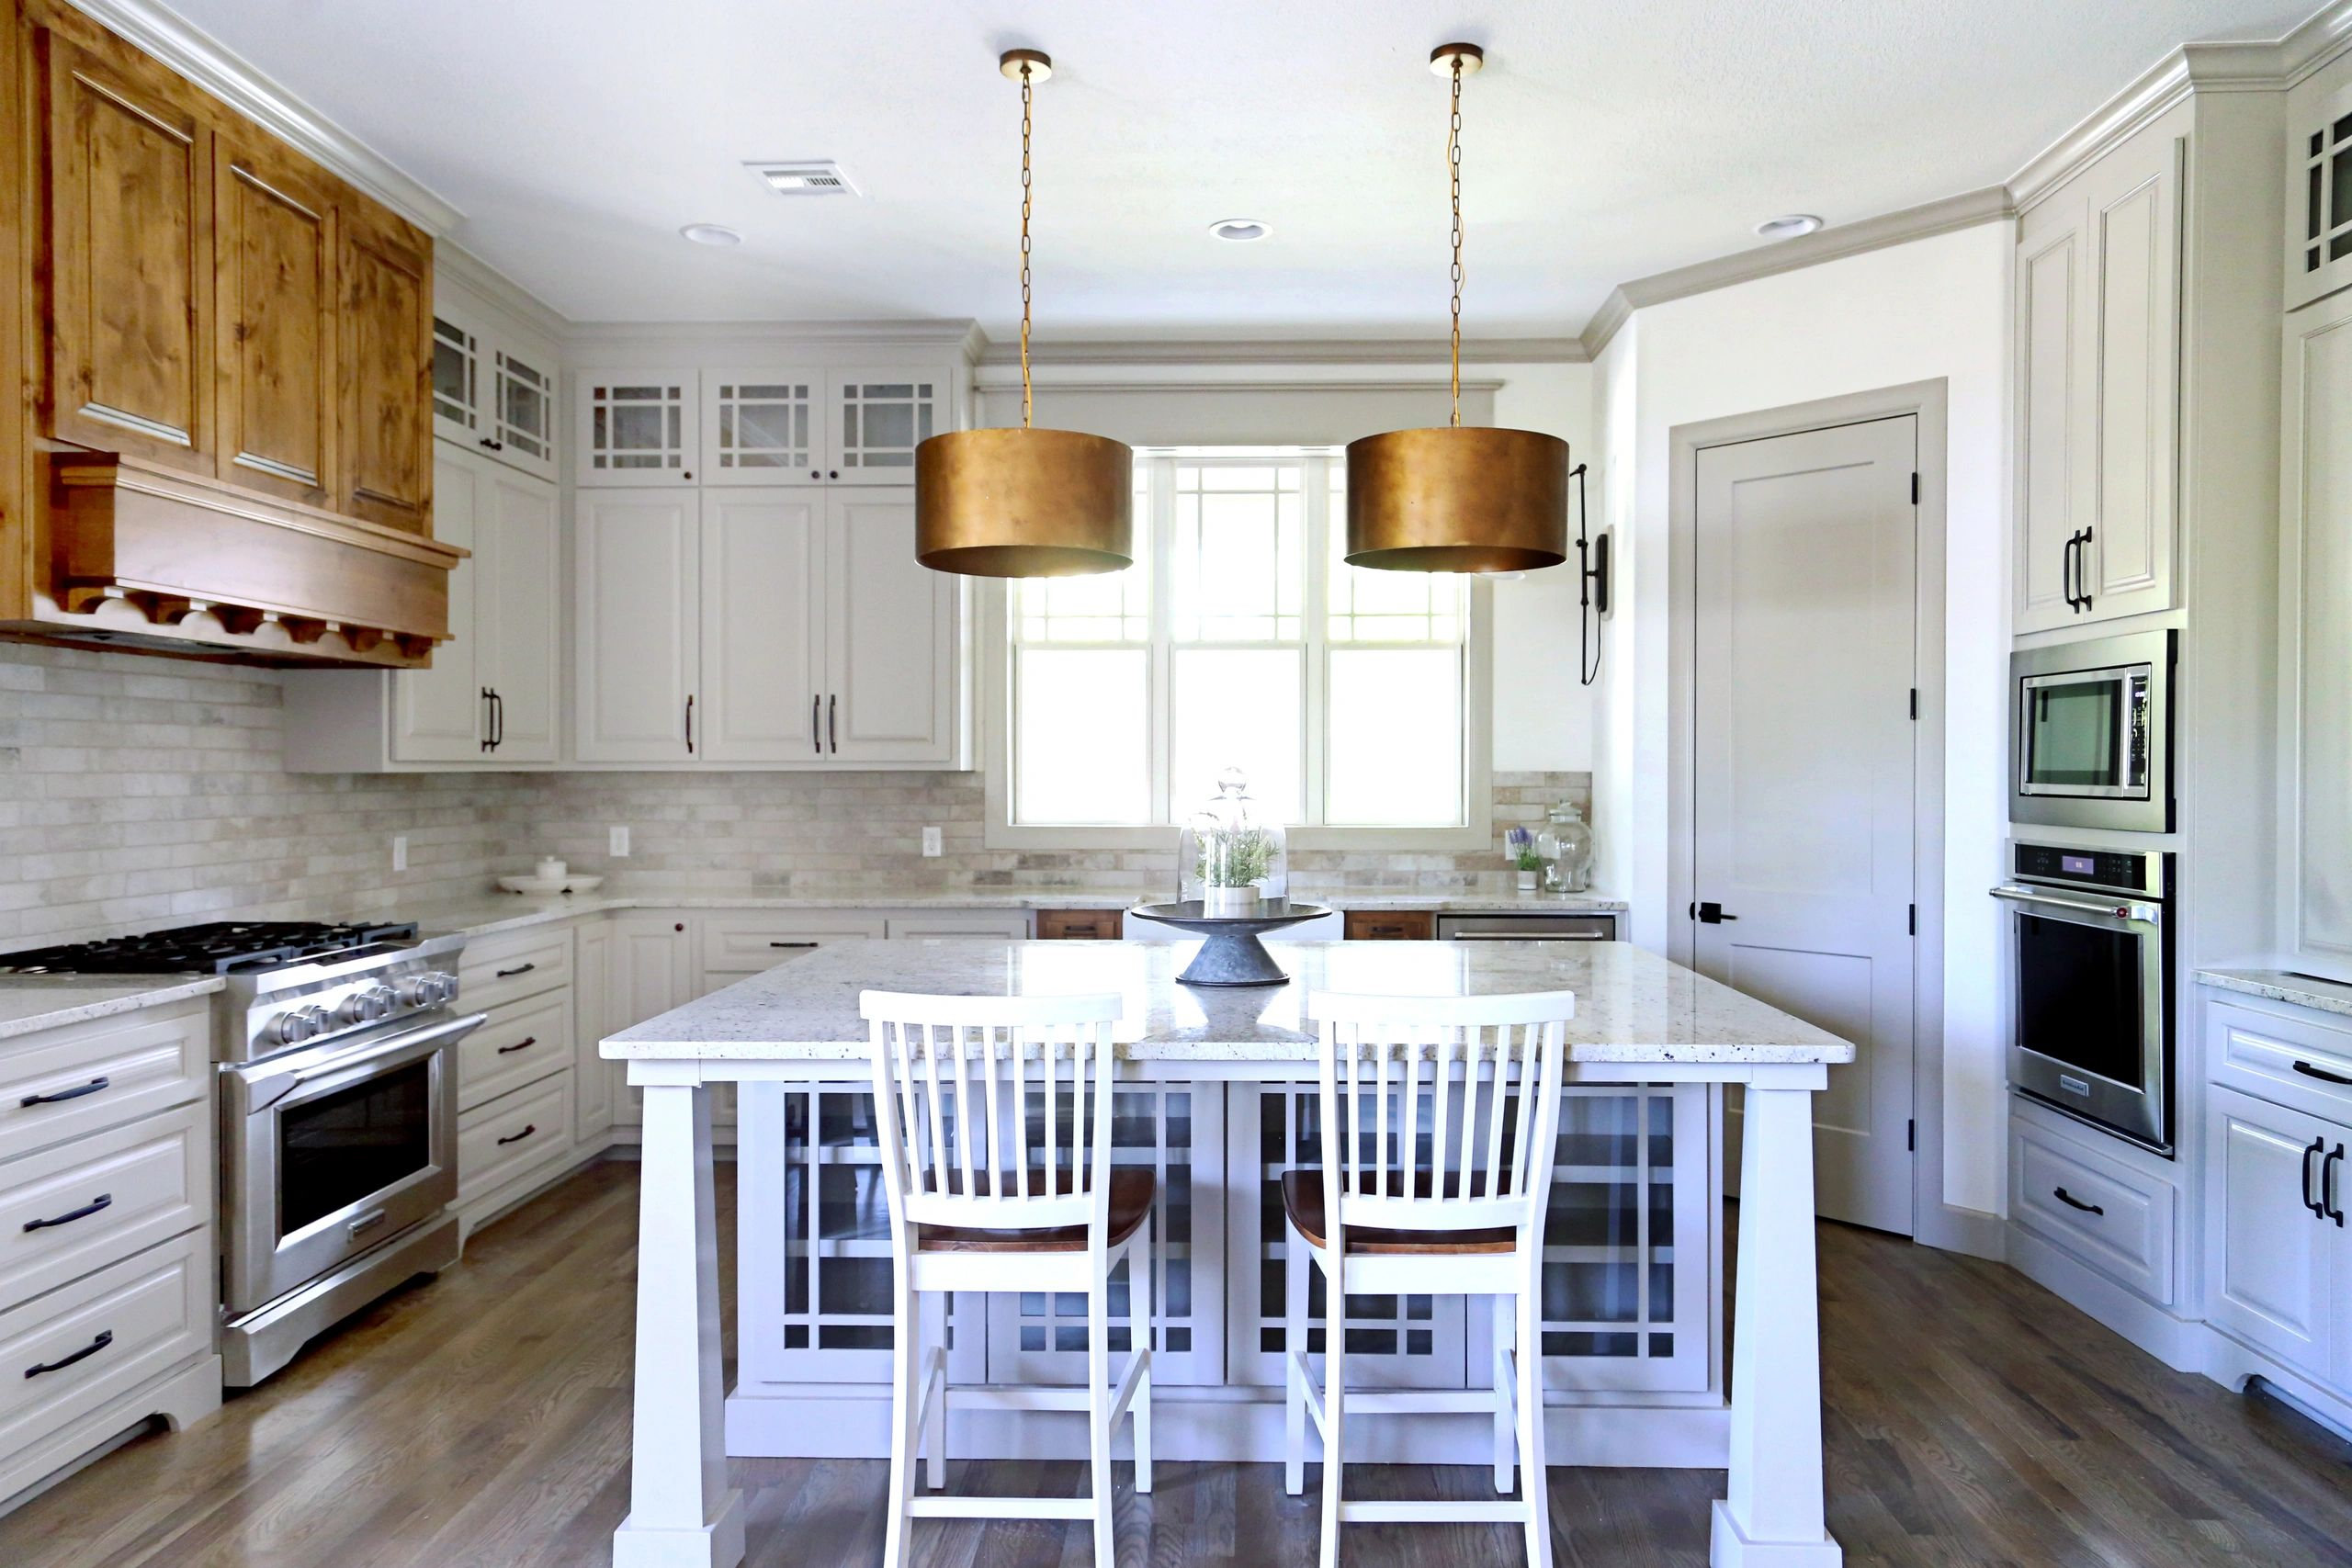 Beautiful kitchen cabinets and trim work